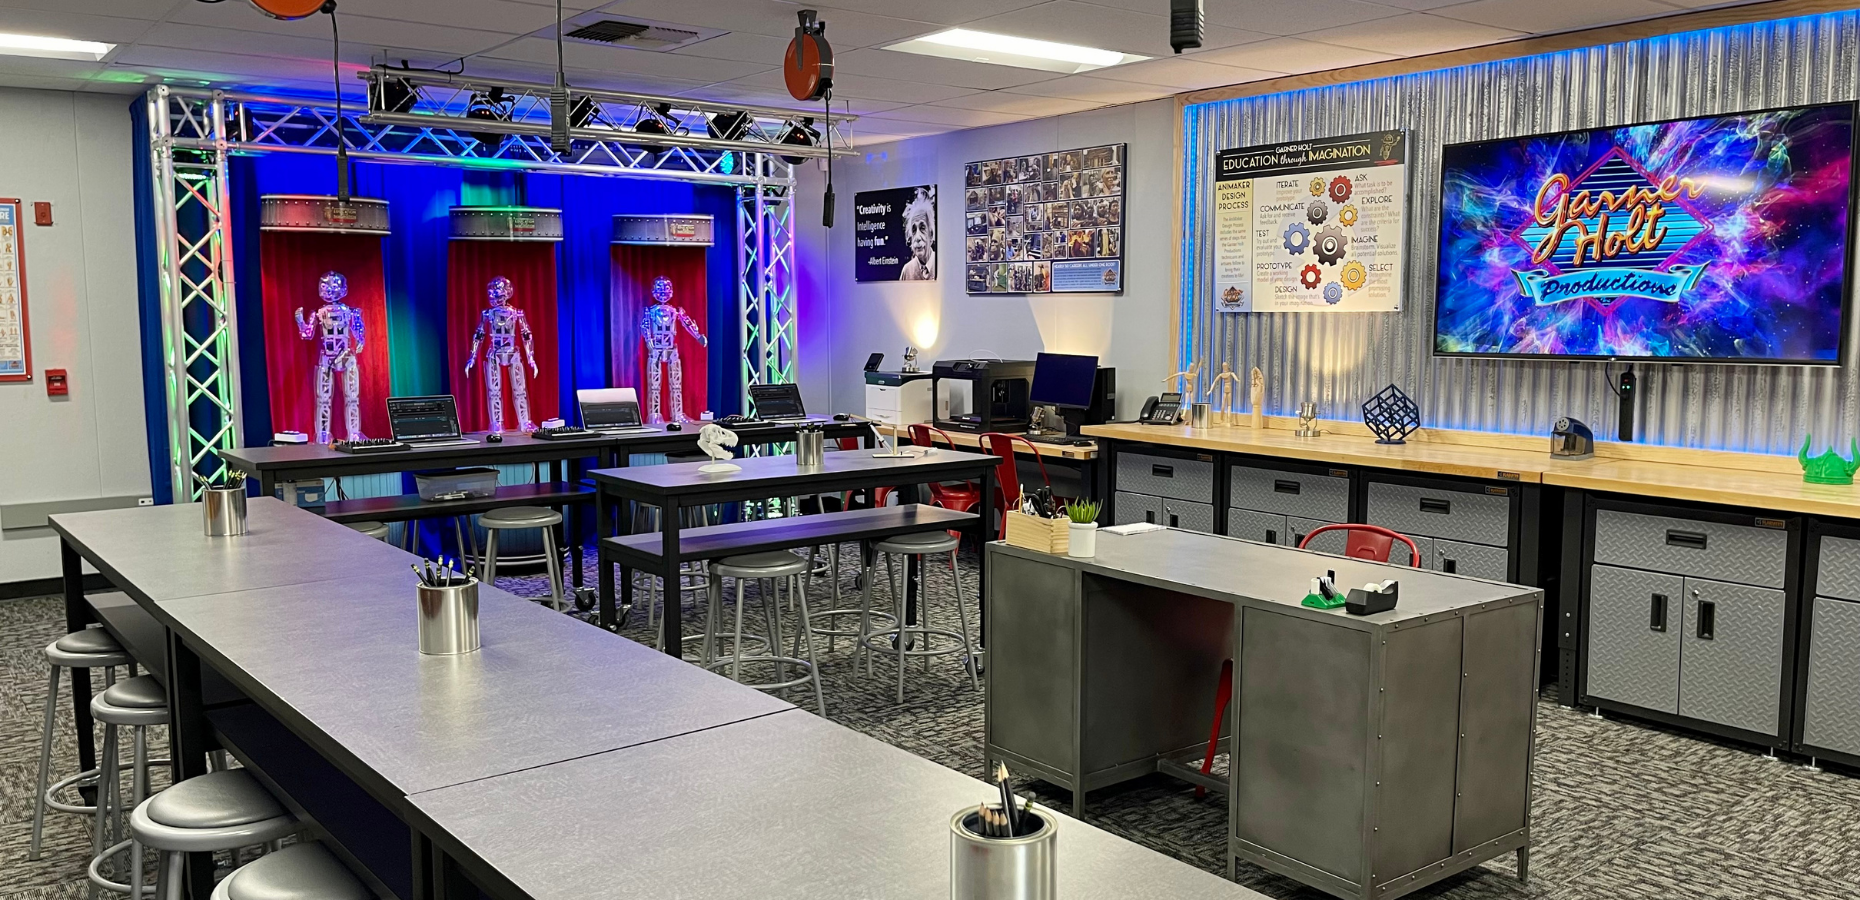 AniMakerspace Lab